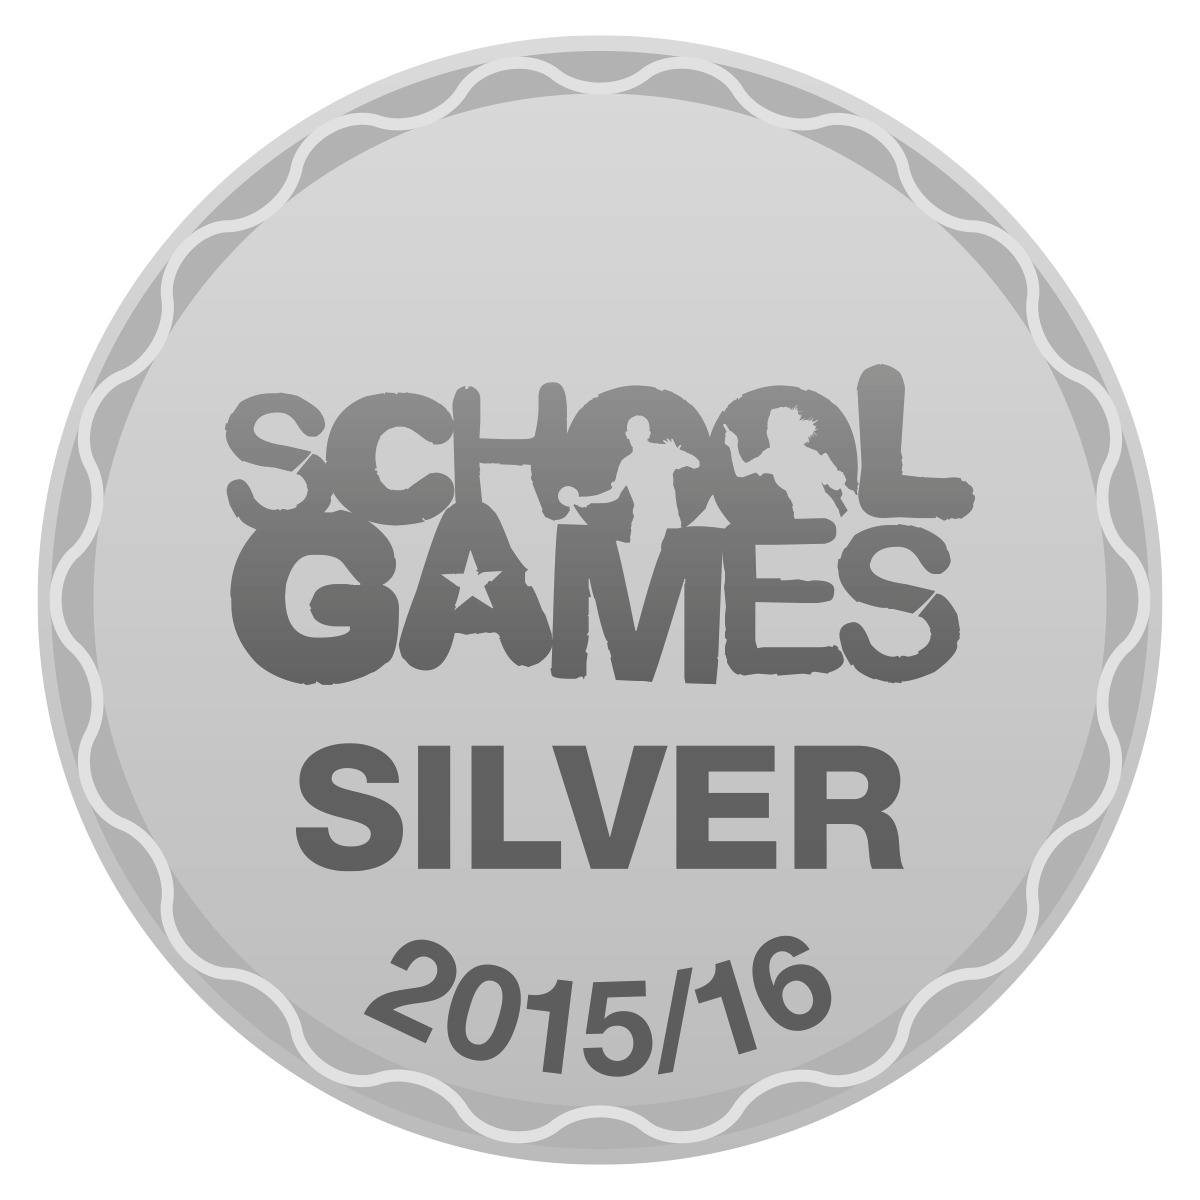 Sainsburys School Games Silver 2015/16